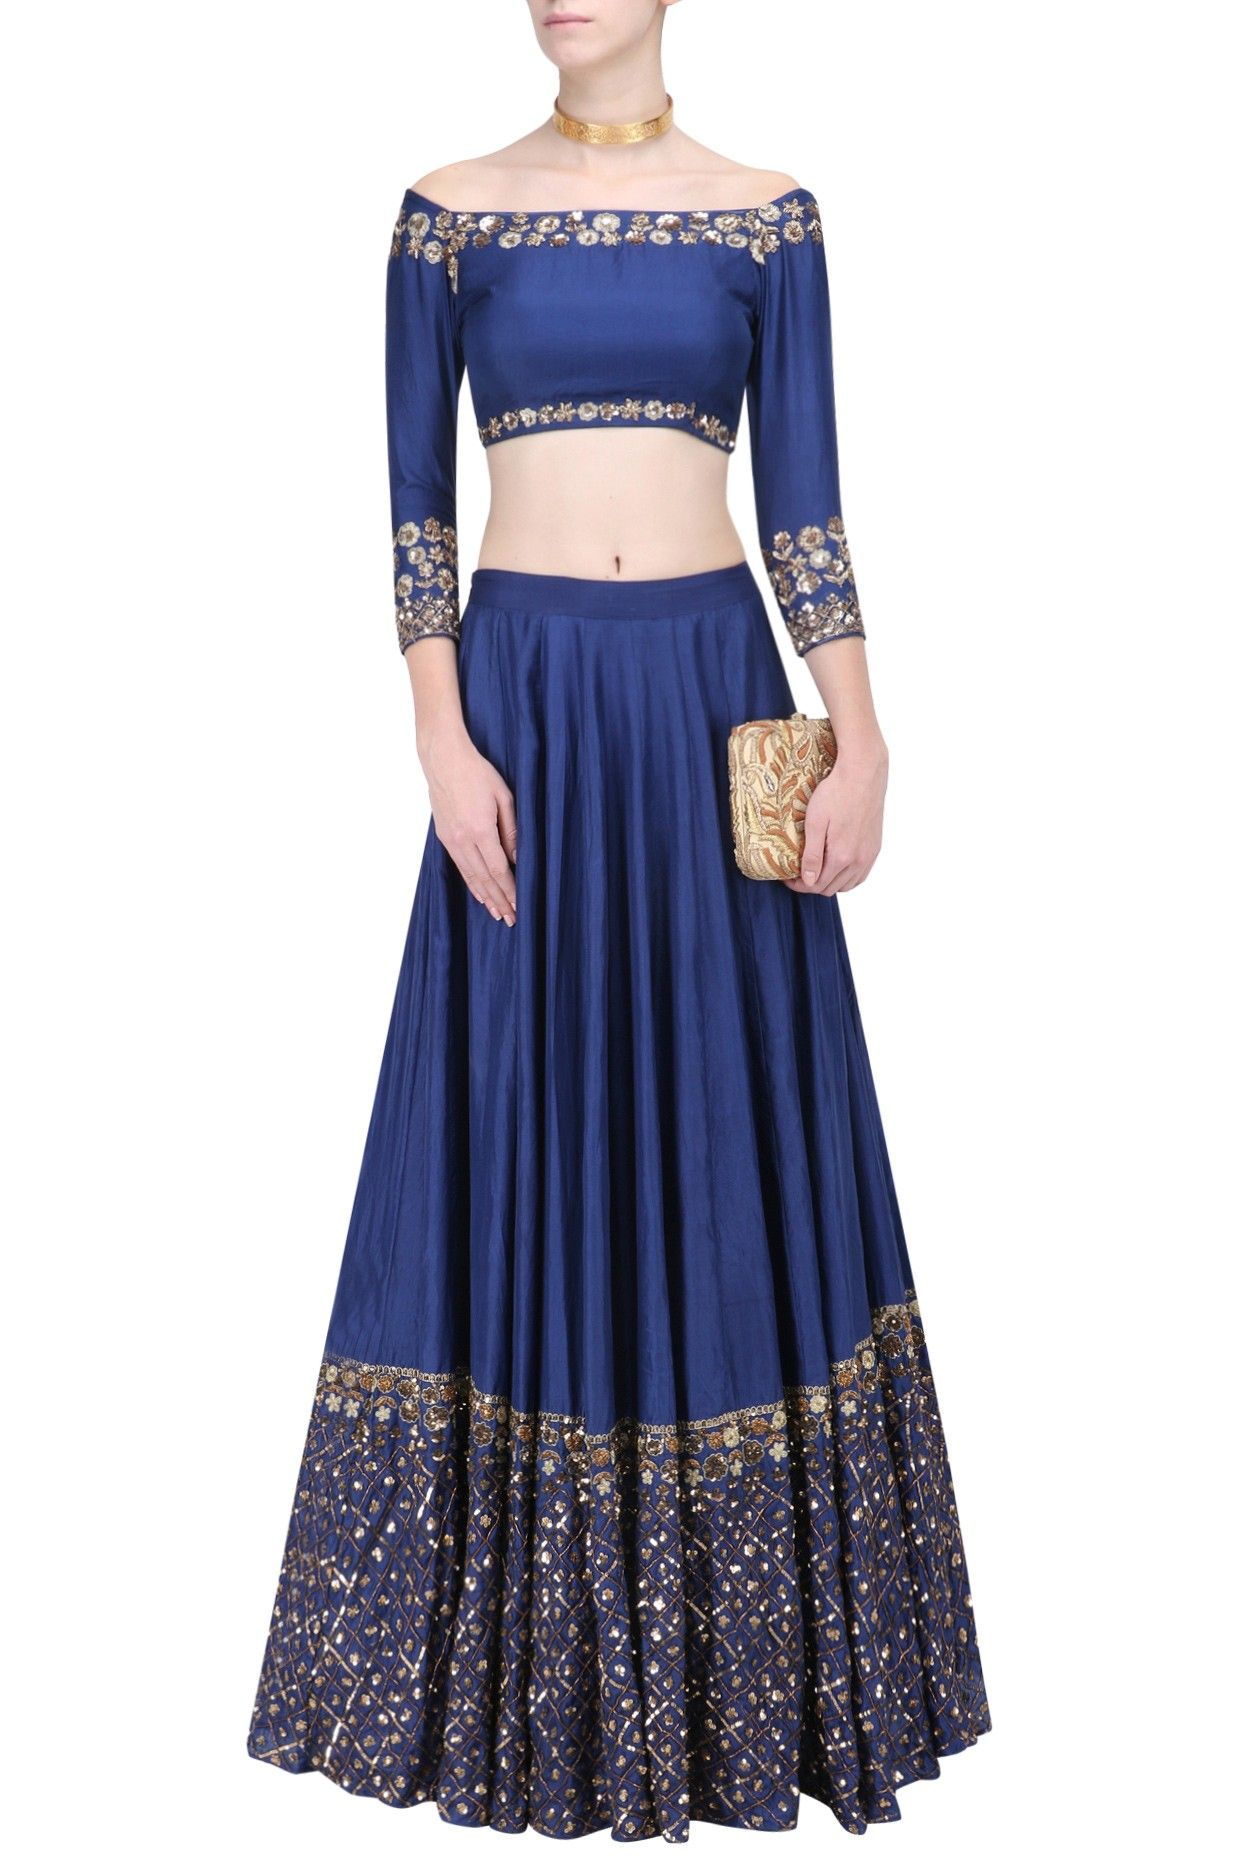 45a0a789cdfc9 Navy and gold sequins lehenga with offshoulder crop top available only at  Pernia s Pop Up Shop.